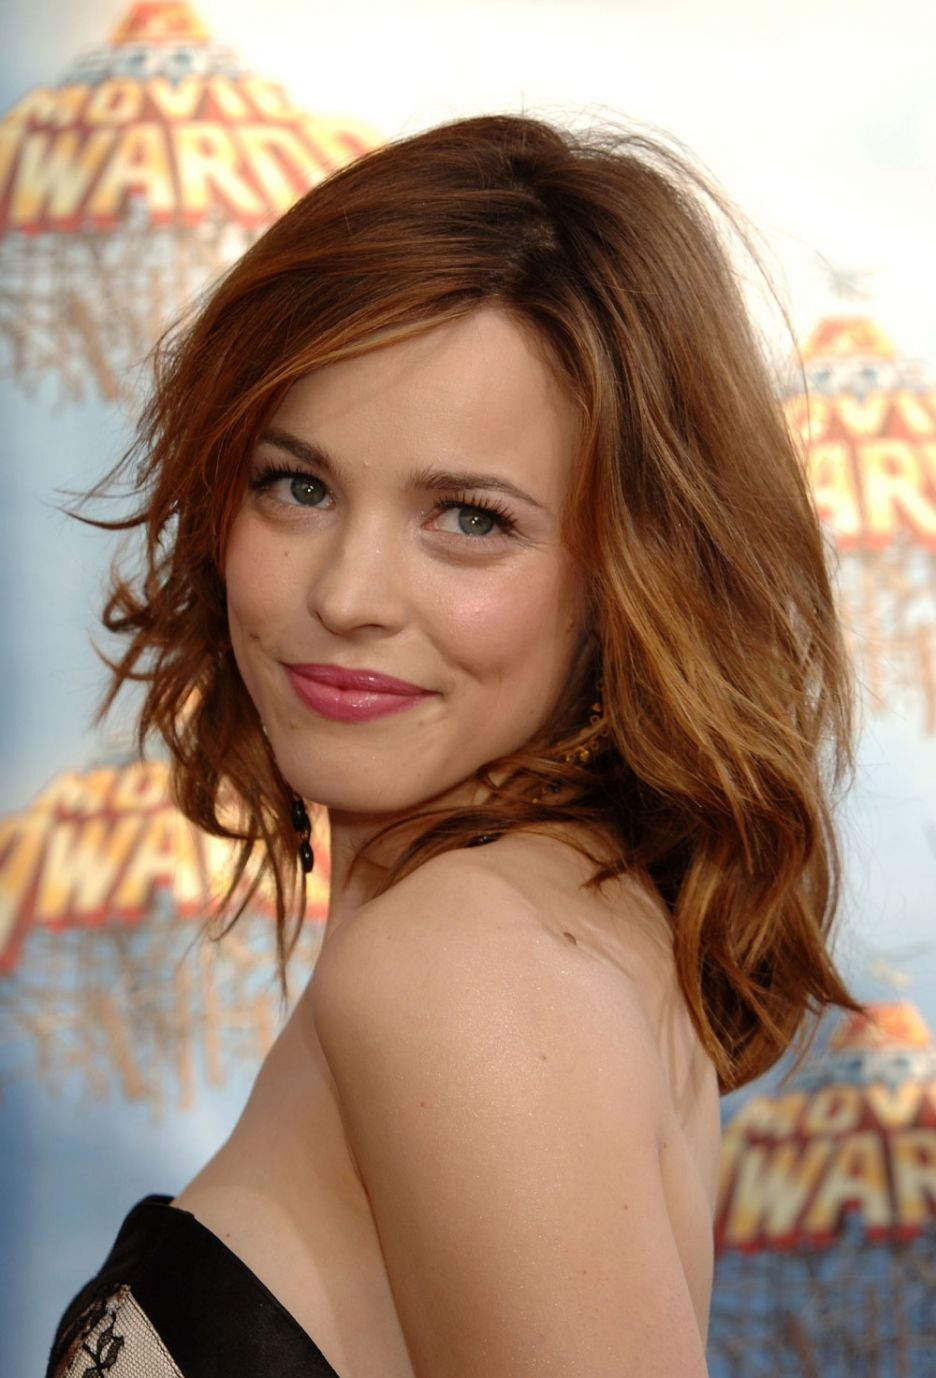 rachel mcadams фильмыrachel mcadams instagram, rachel mcadams and ryan gosling, rachel mcadams 2016, rachel mcadams movies, rachel mcadams gif, rachel mcadams 2017, rachel mcadams films, rachel mcadams vk, rachel mcadams инстаграм, rachel mcadams true detective, rachel mcadams фильмы, rachel mcadams boyfriend, rachel mcadams dating, rachel mcadams фильмография, rachel mcadams twitter, rachel mcadams wiki, rachel mcadams kinopoisk, rachel mcadams gallery, rachel mcadams biography, rachel mcadams gif hunt